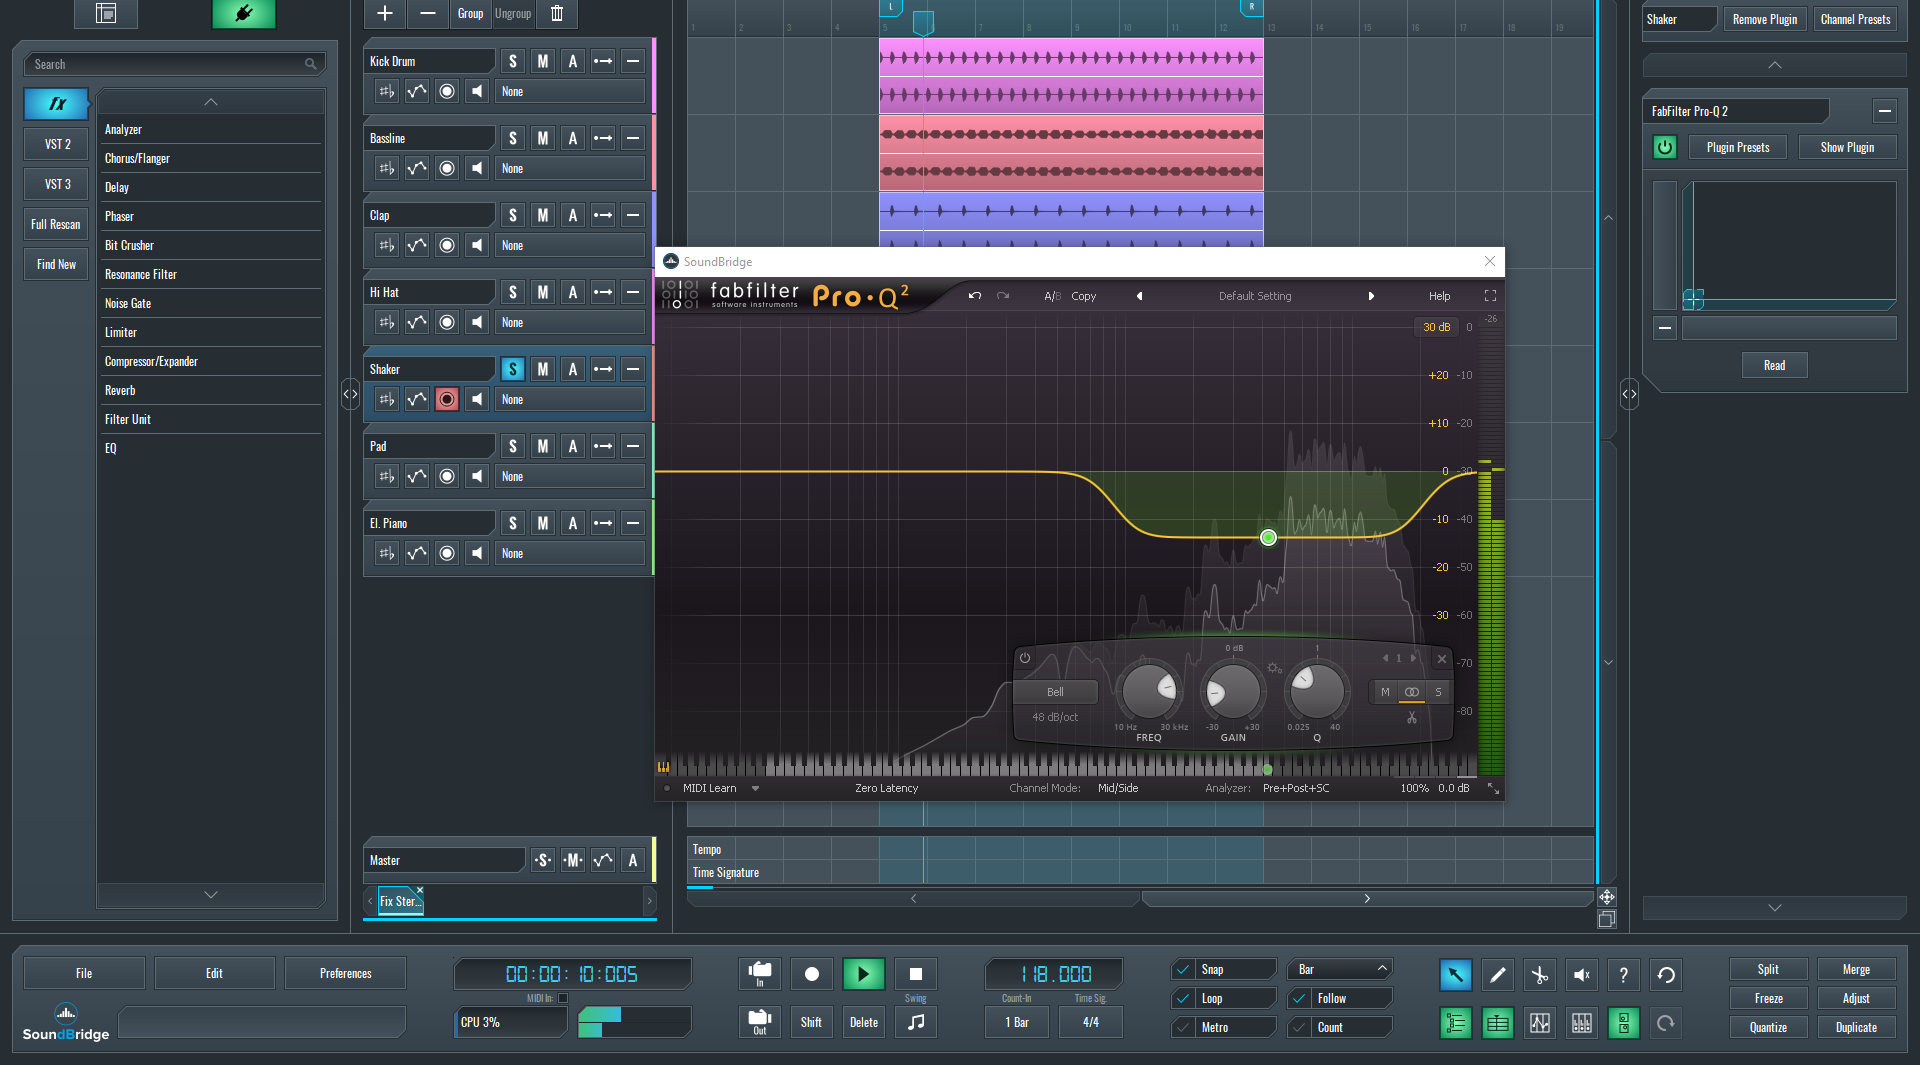 An instance of FabFilter Pro-Q2 on the shaker loop for Mid-Side EQ article.